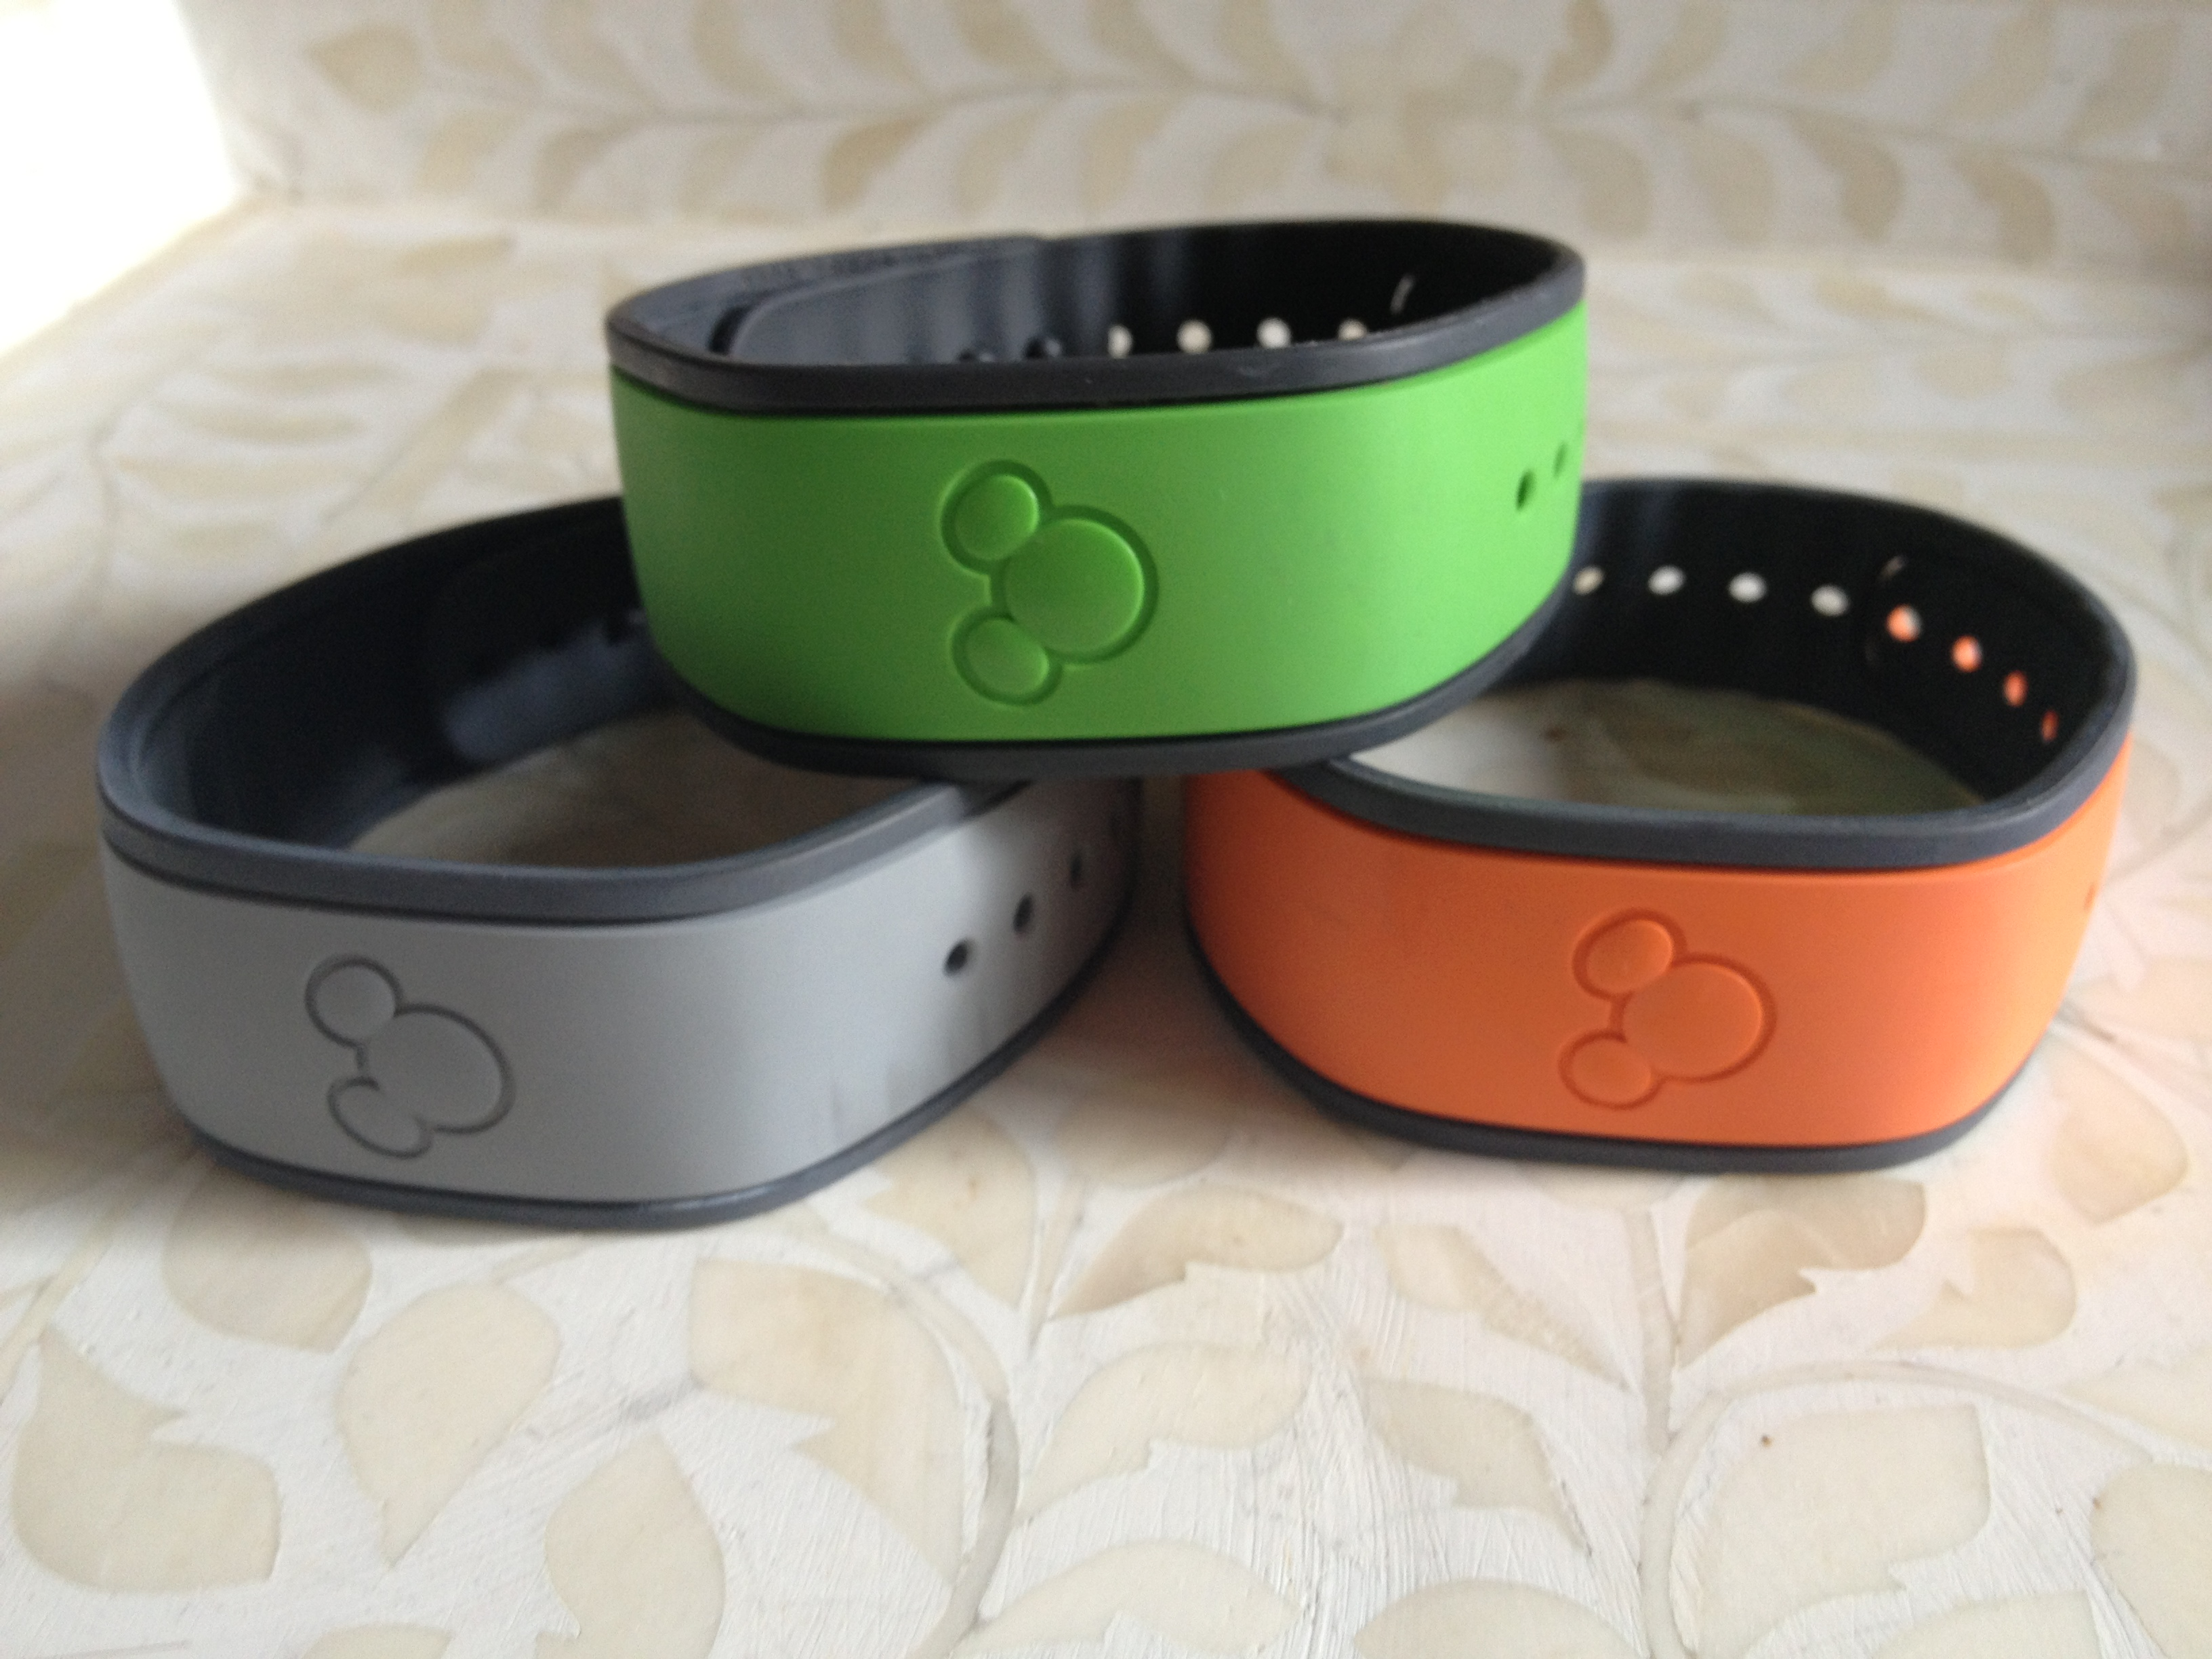 Those Magic Bands and Fast Pass + at Walt Disney World | travelbynatasha